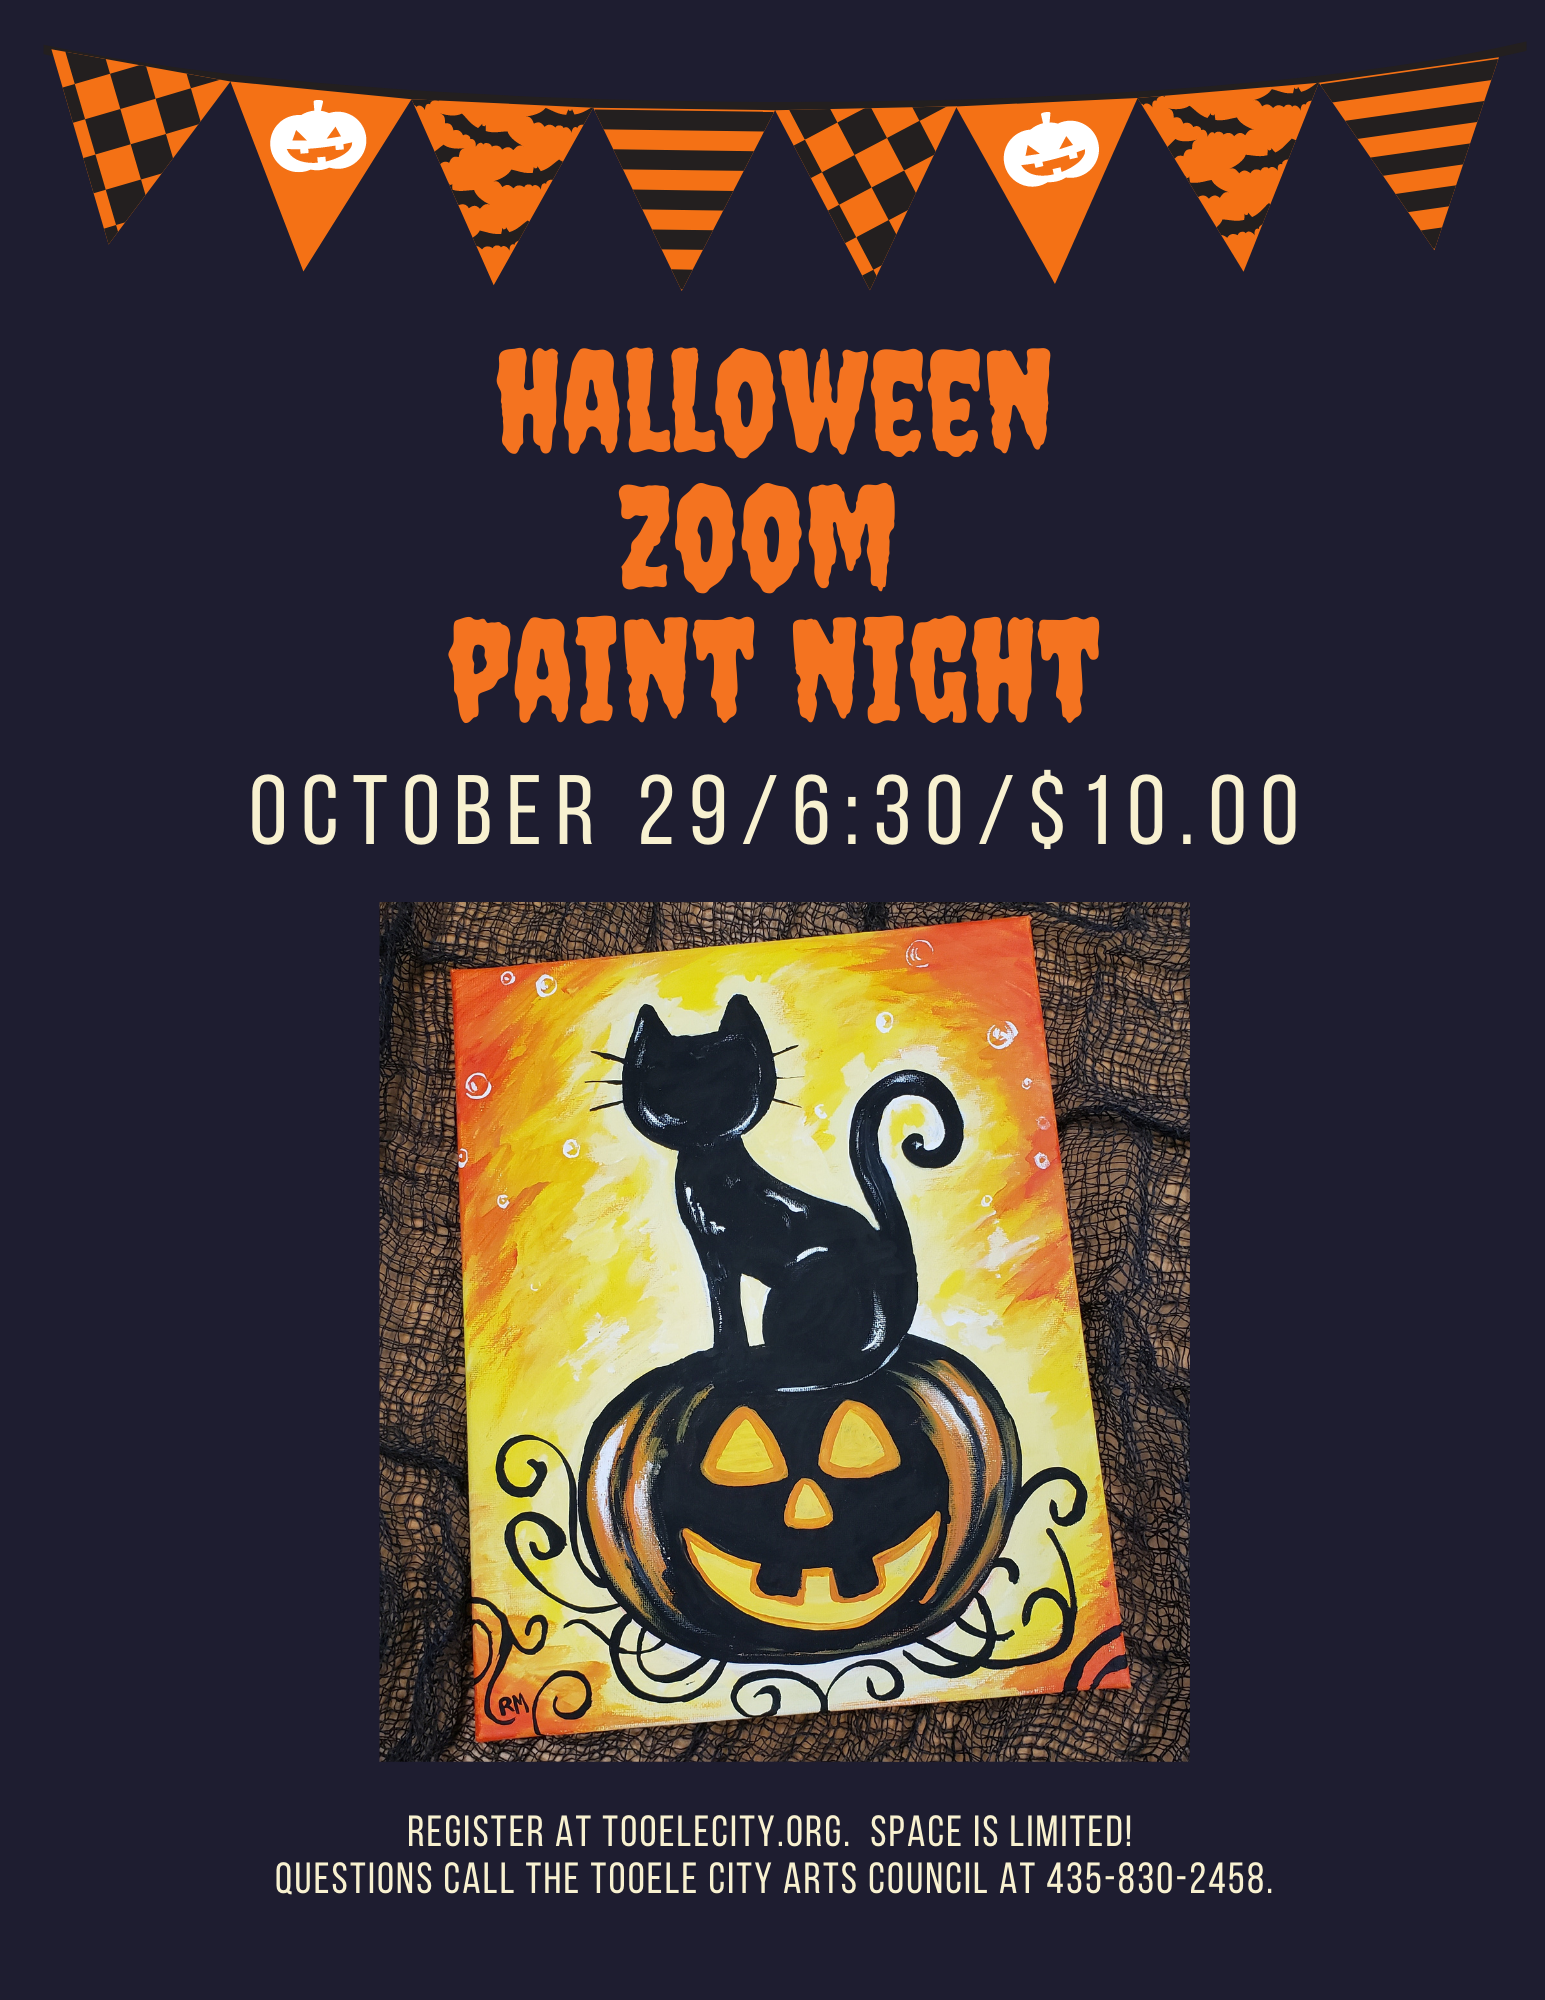 Halloween Zoom Paint Night 2020